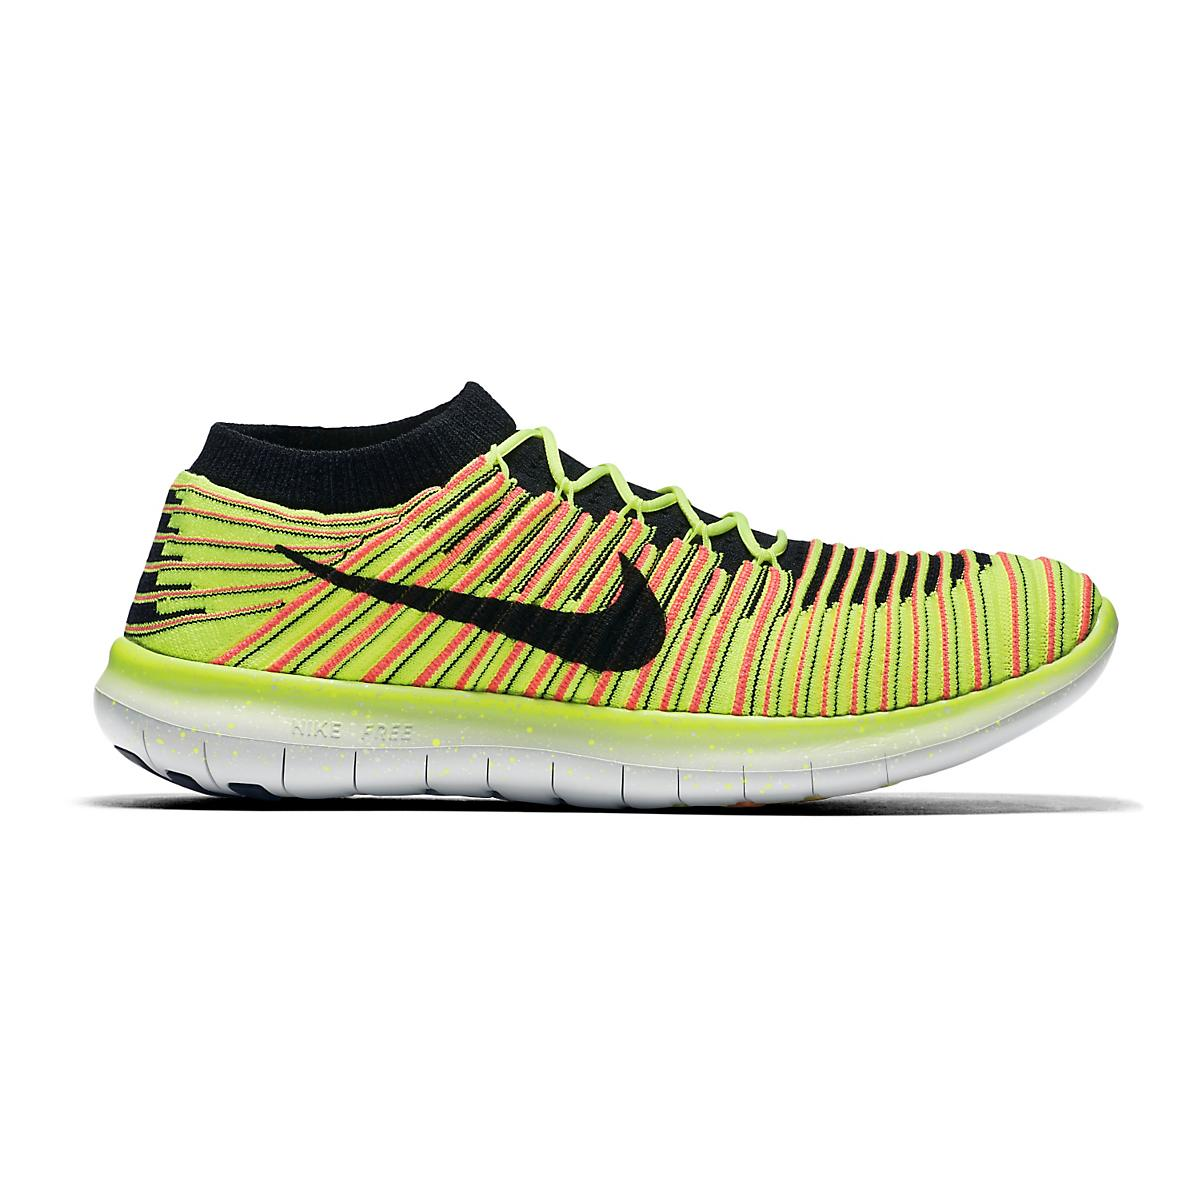 reputable site 43852 96ce7 Mens Nike Free RN Motion Flyknit Running Shoe at Road Runner Sports